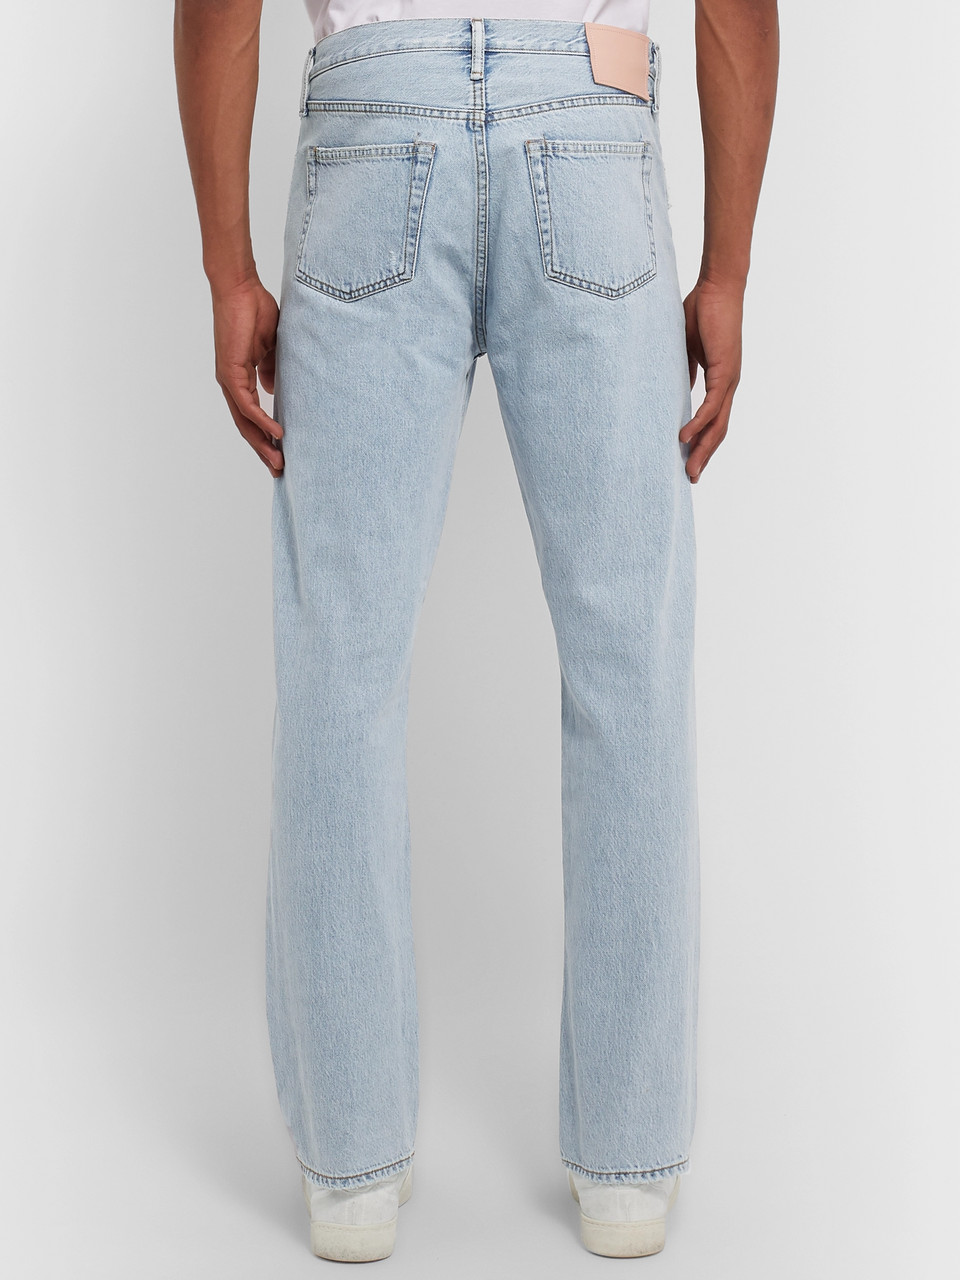 Acne Studios 1996 Stonewashed Denim Jeans